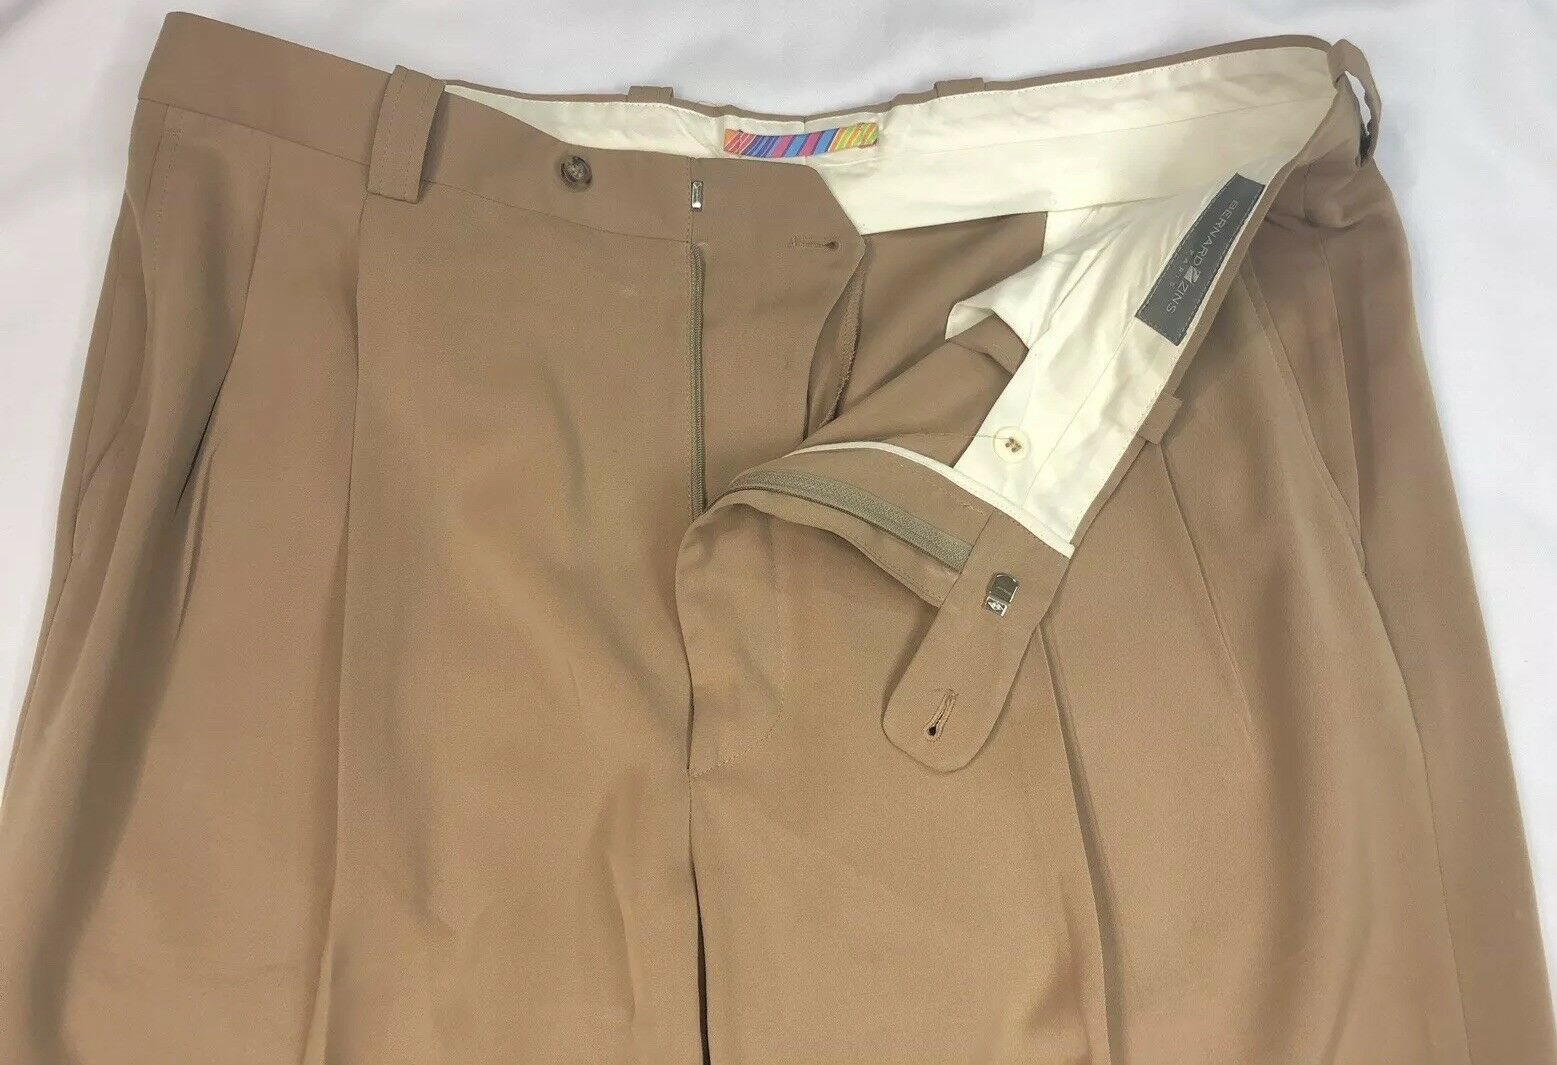 Bernard Zins Paris Pleat Front Men Tan Khaki Le Kenny Dress Pants Sz 40 France